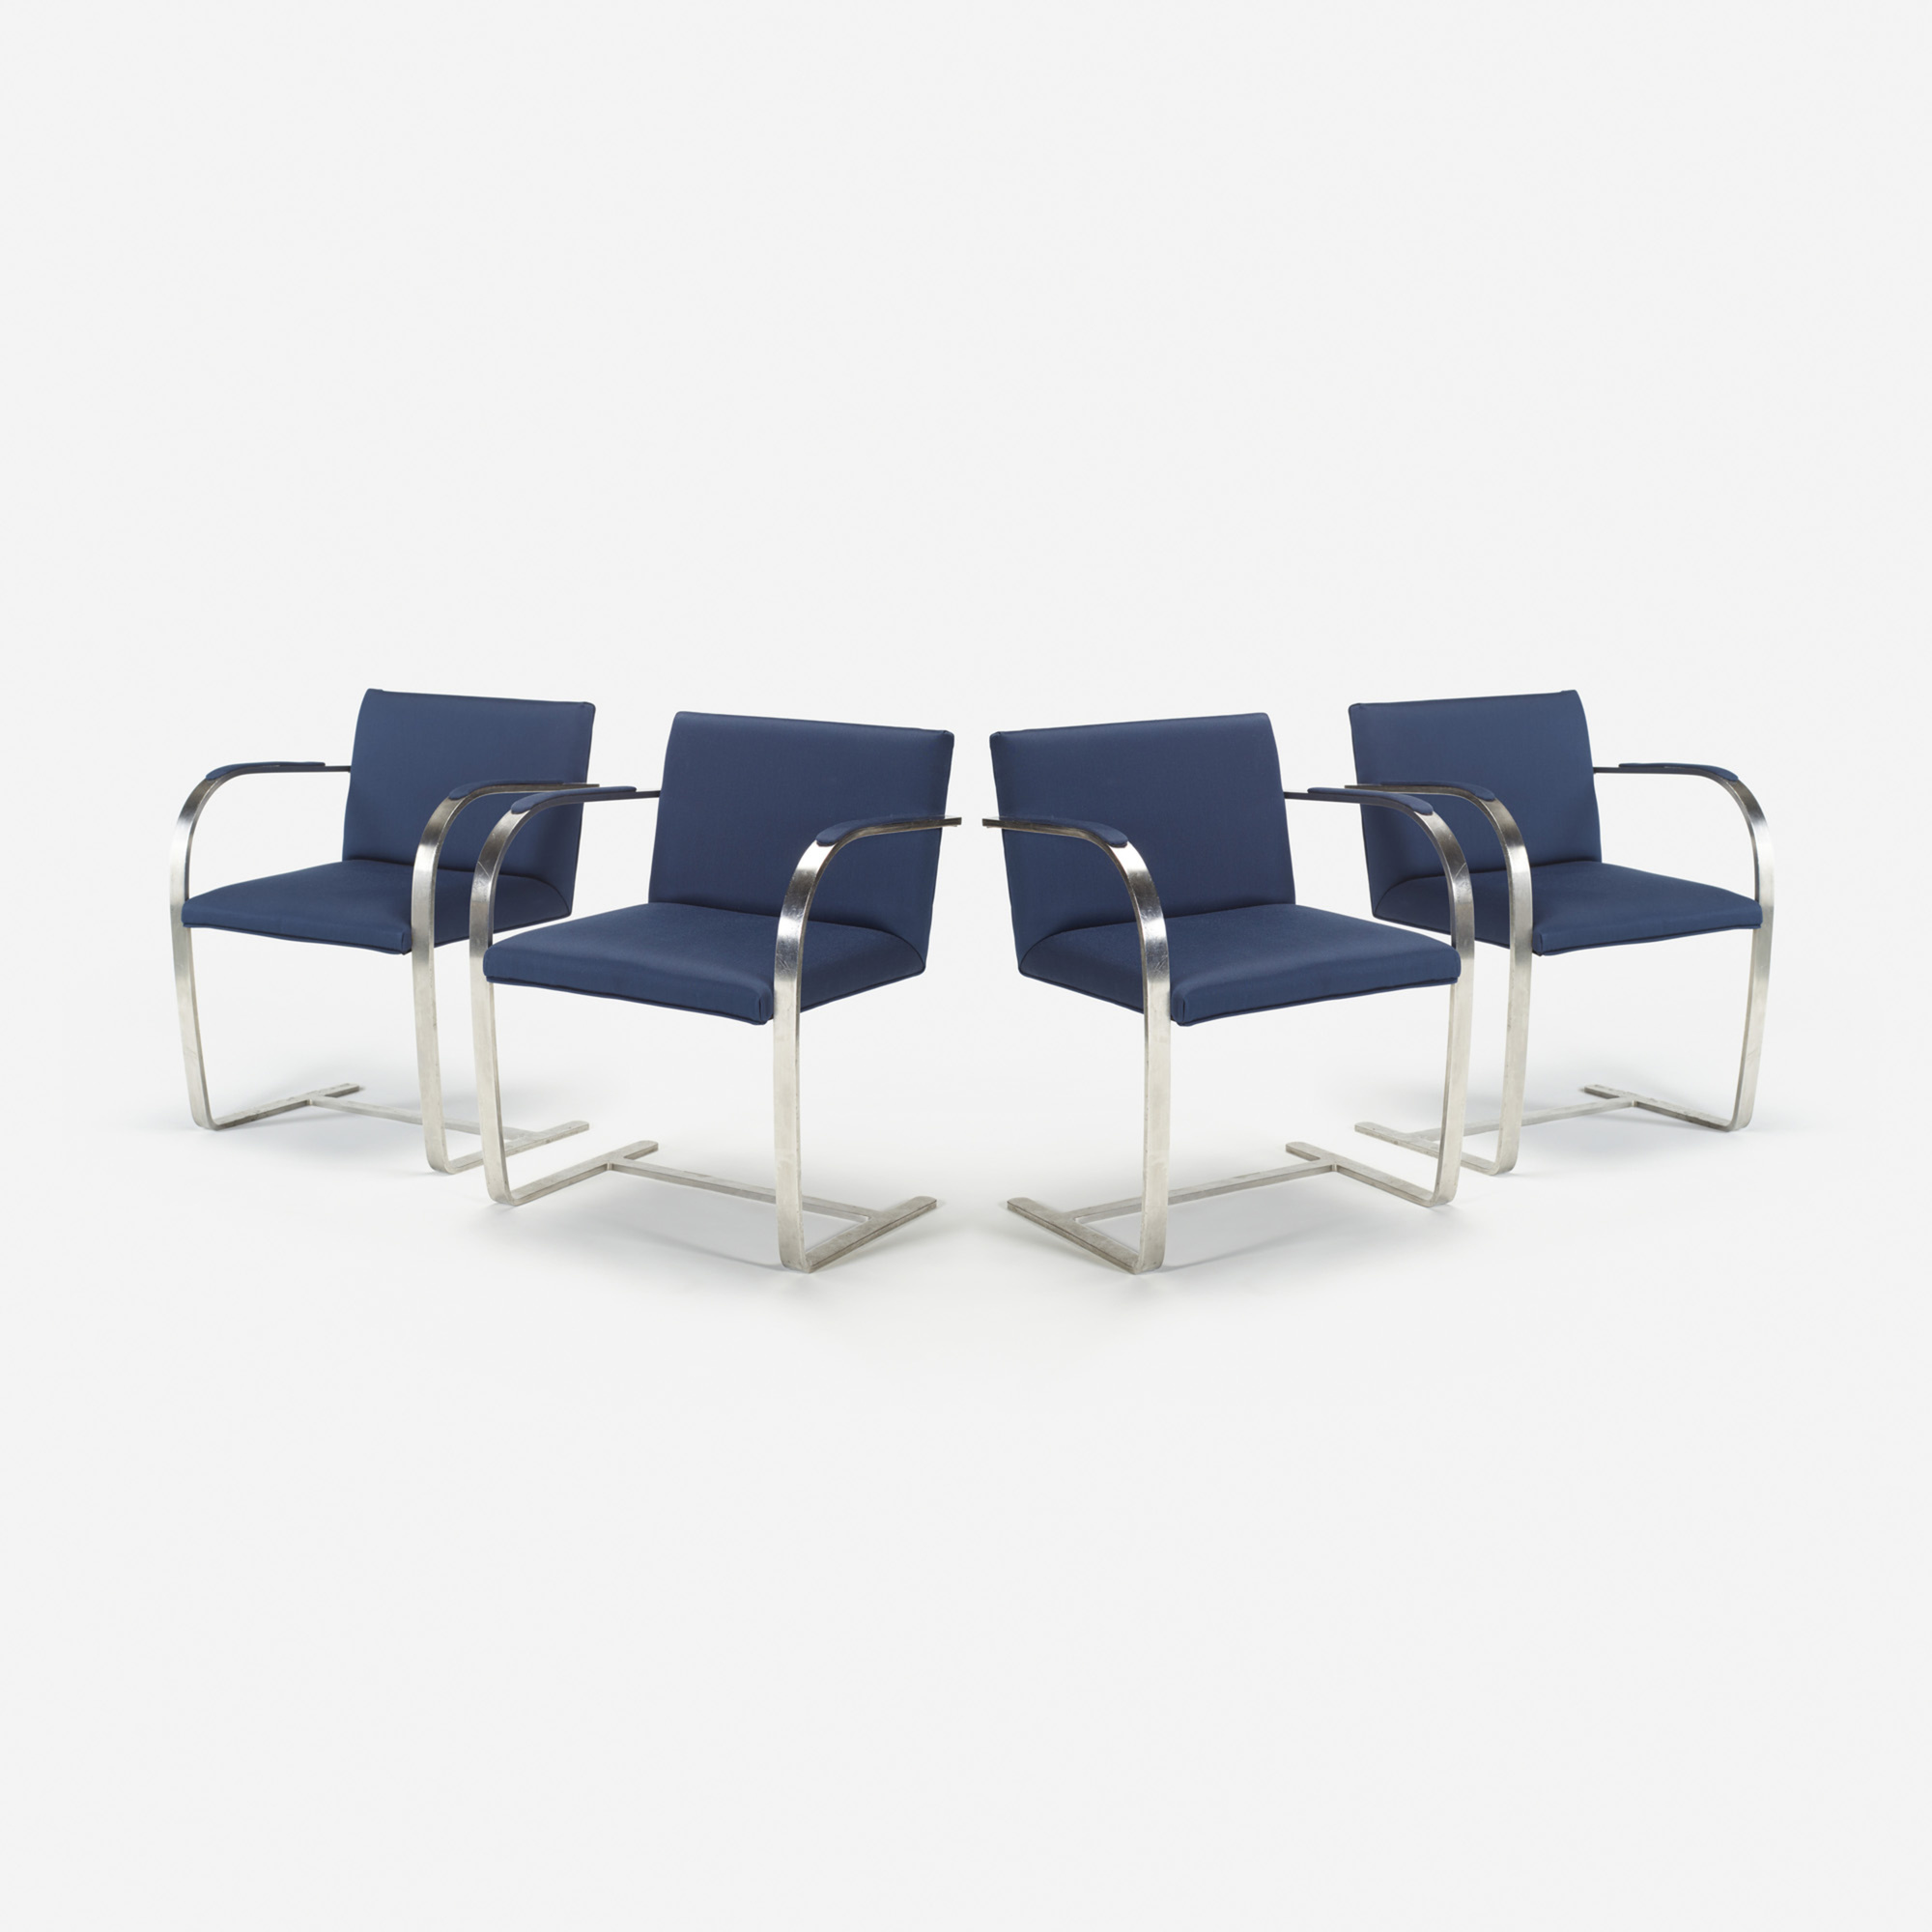 208: Ludwig Mies van der Rohe / Brno chairs from The Four Seasons, set of four (1 of 1)